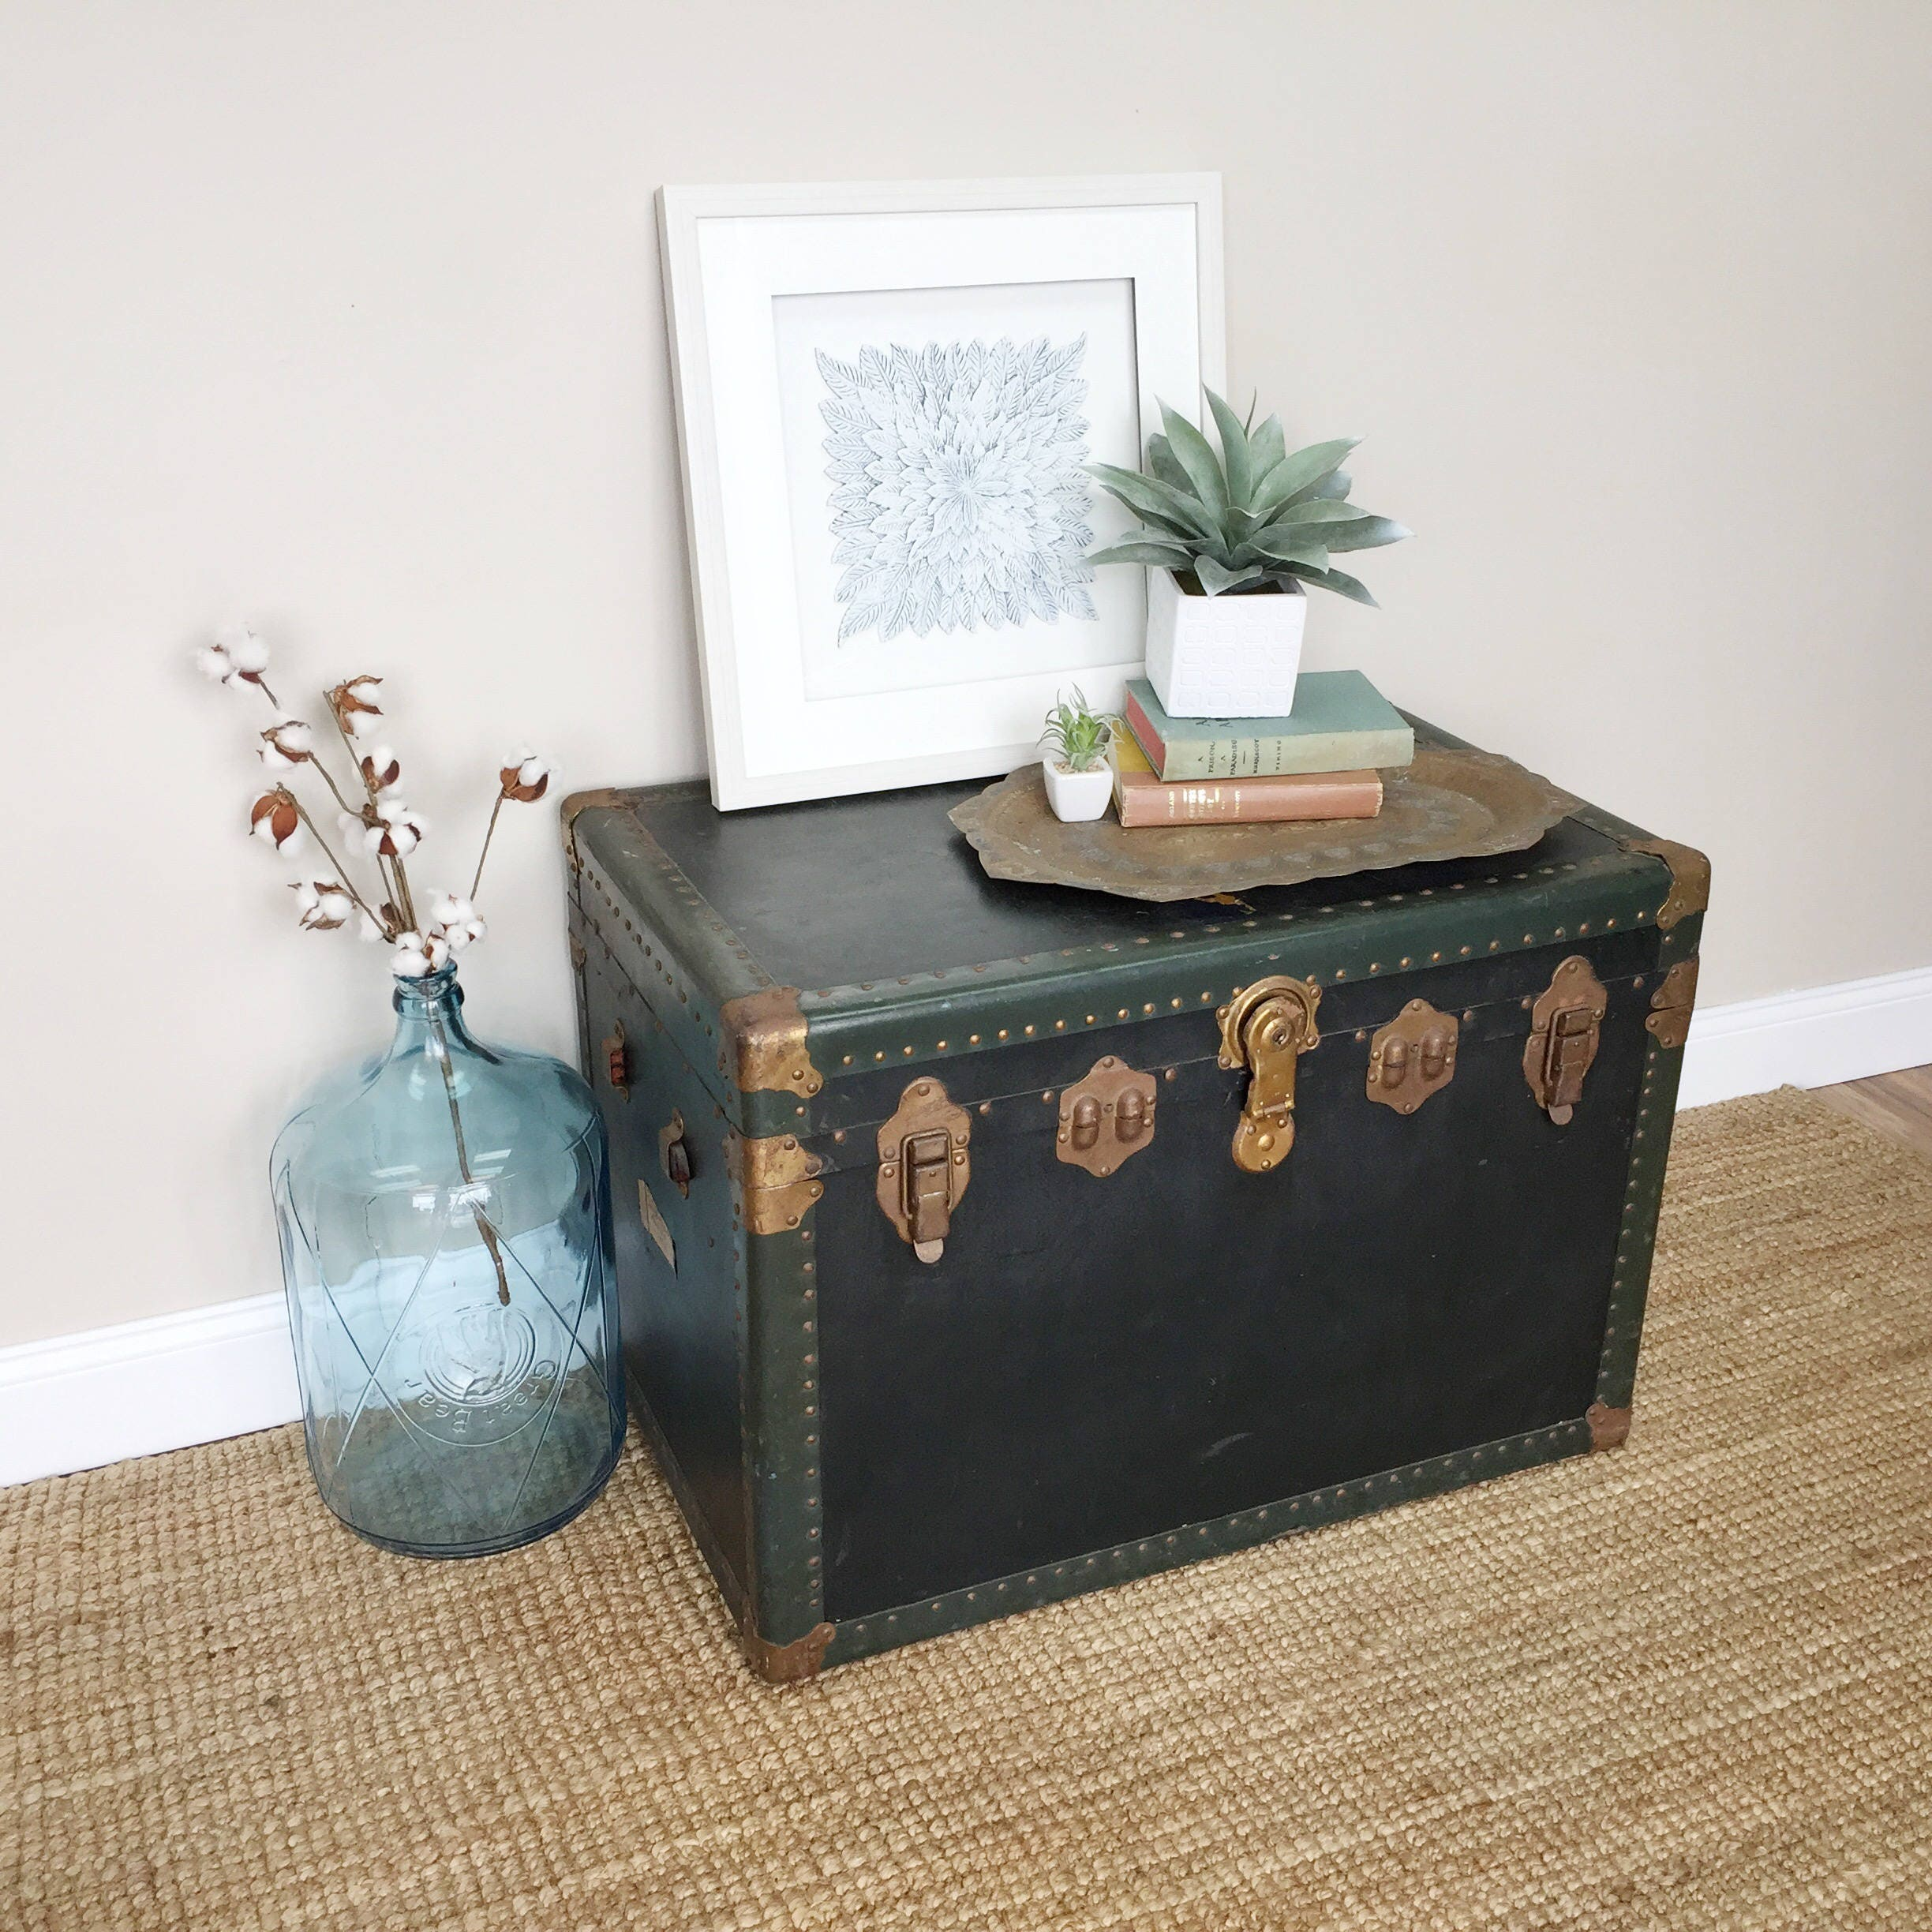 Steamer Trunk Coffee Table Vintage Trunk Storage Chest Trunk